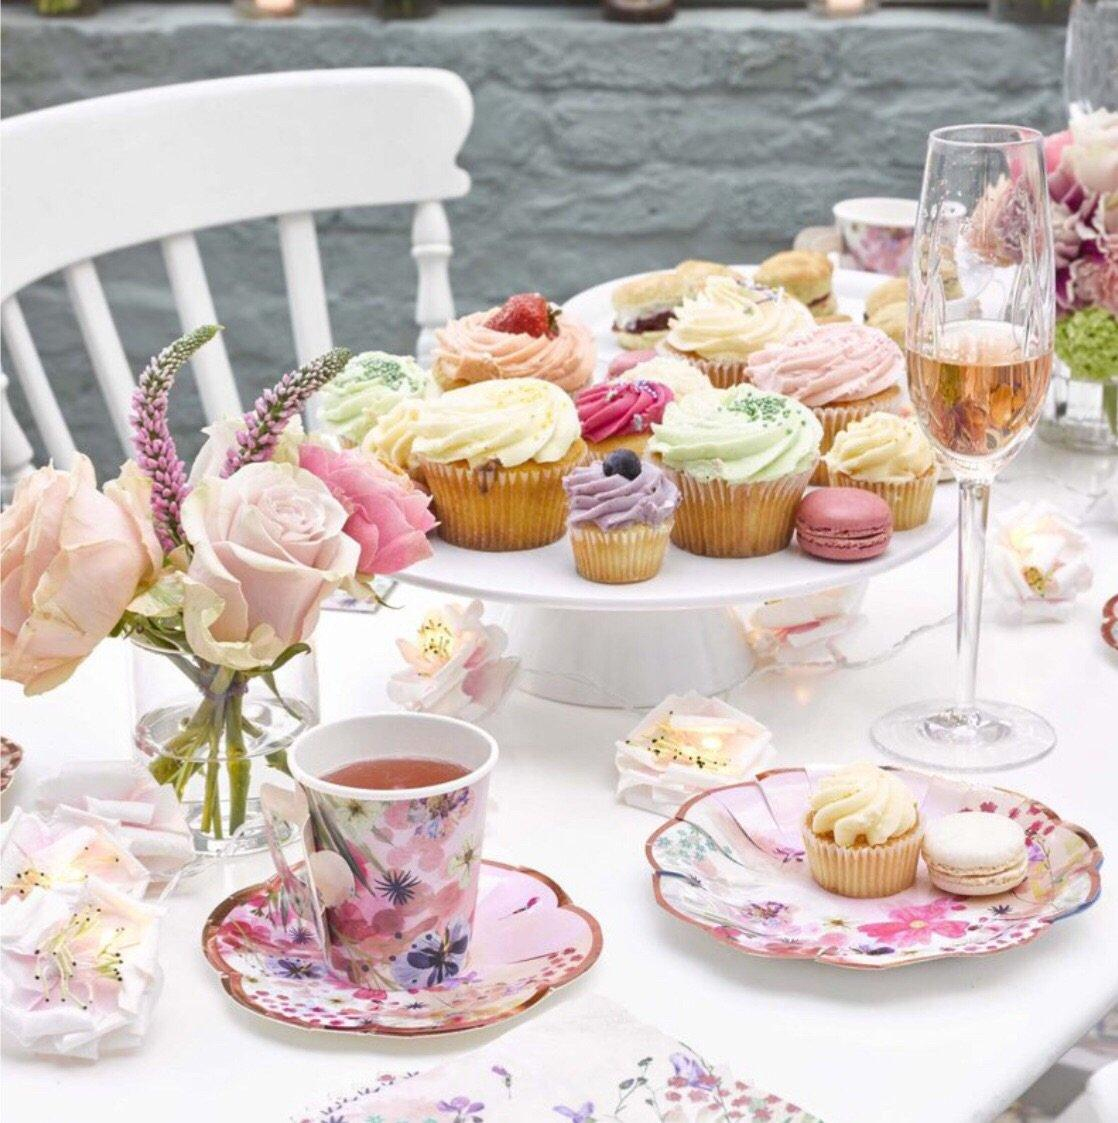 CUPS - BLOSSOM GIRLS TEACUP + SAUCER TALKING TABLES